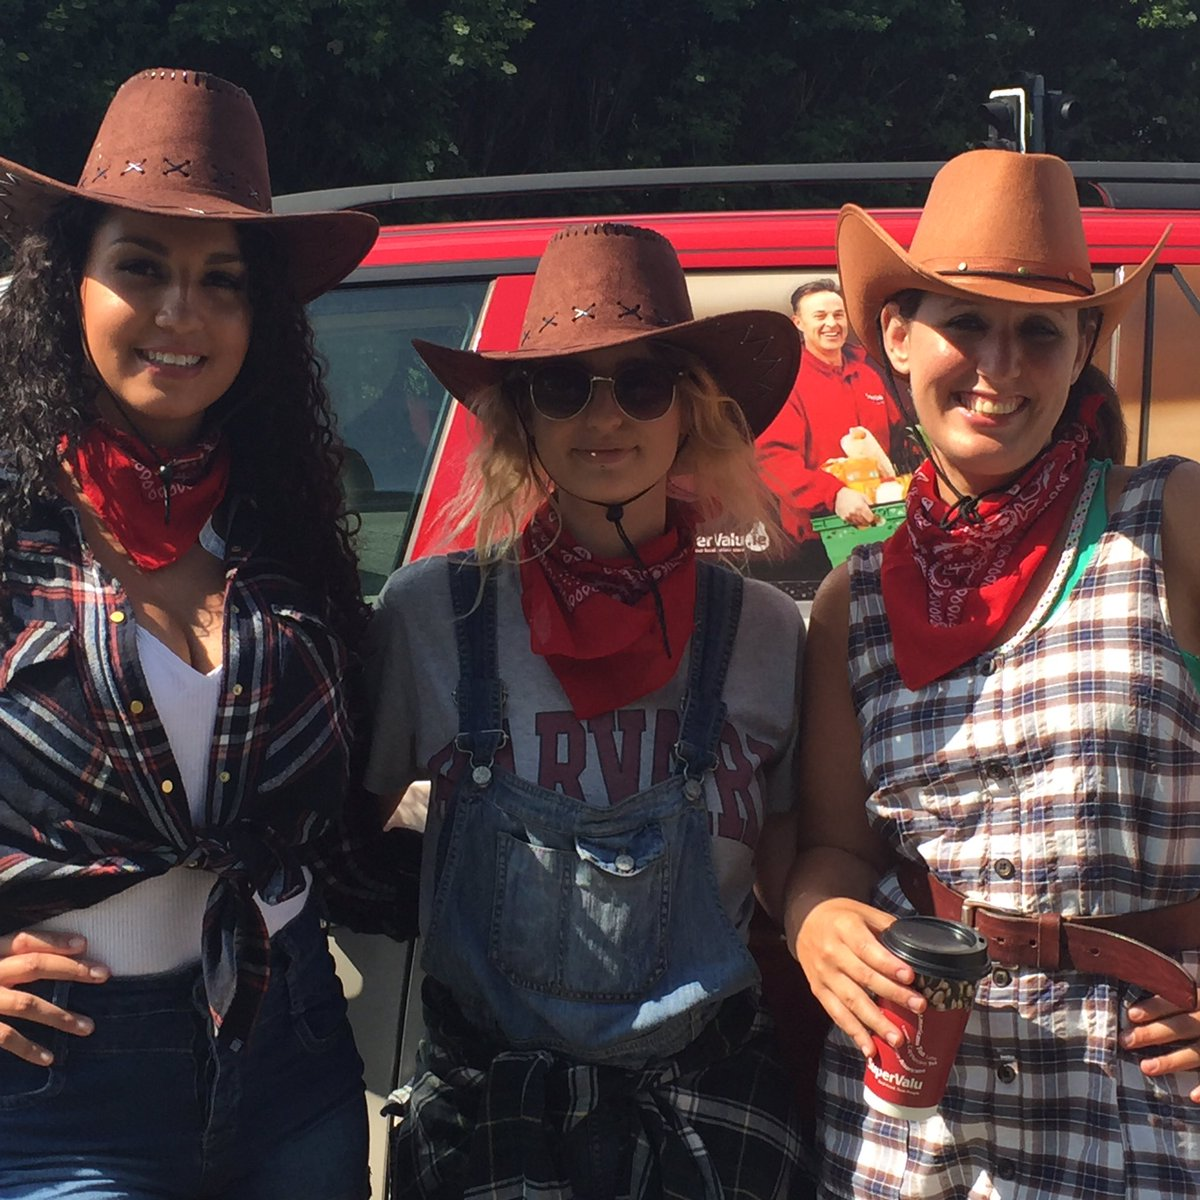 See out Cowgirls out and about? Get a picture of them, tag us and your in the draw for the summer hamper!#foodkarma https://t.co/mBCv32Dyyz